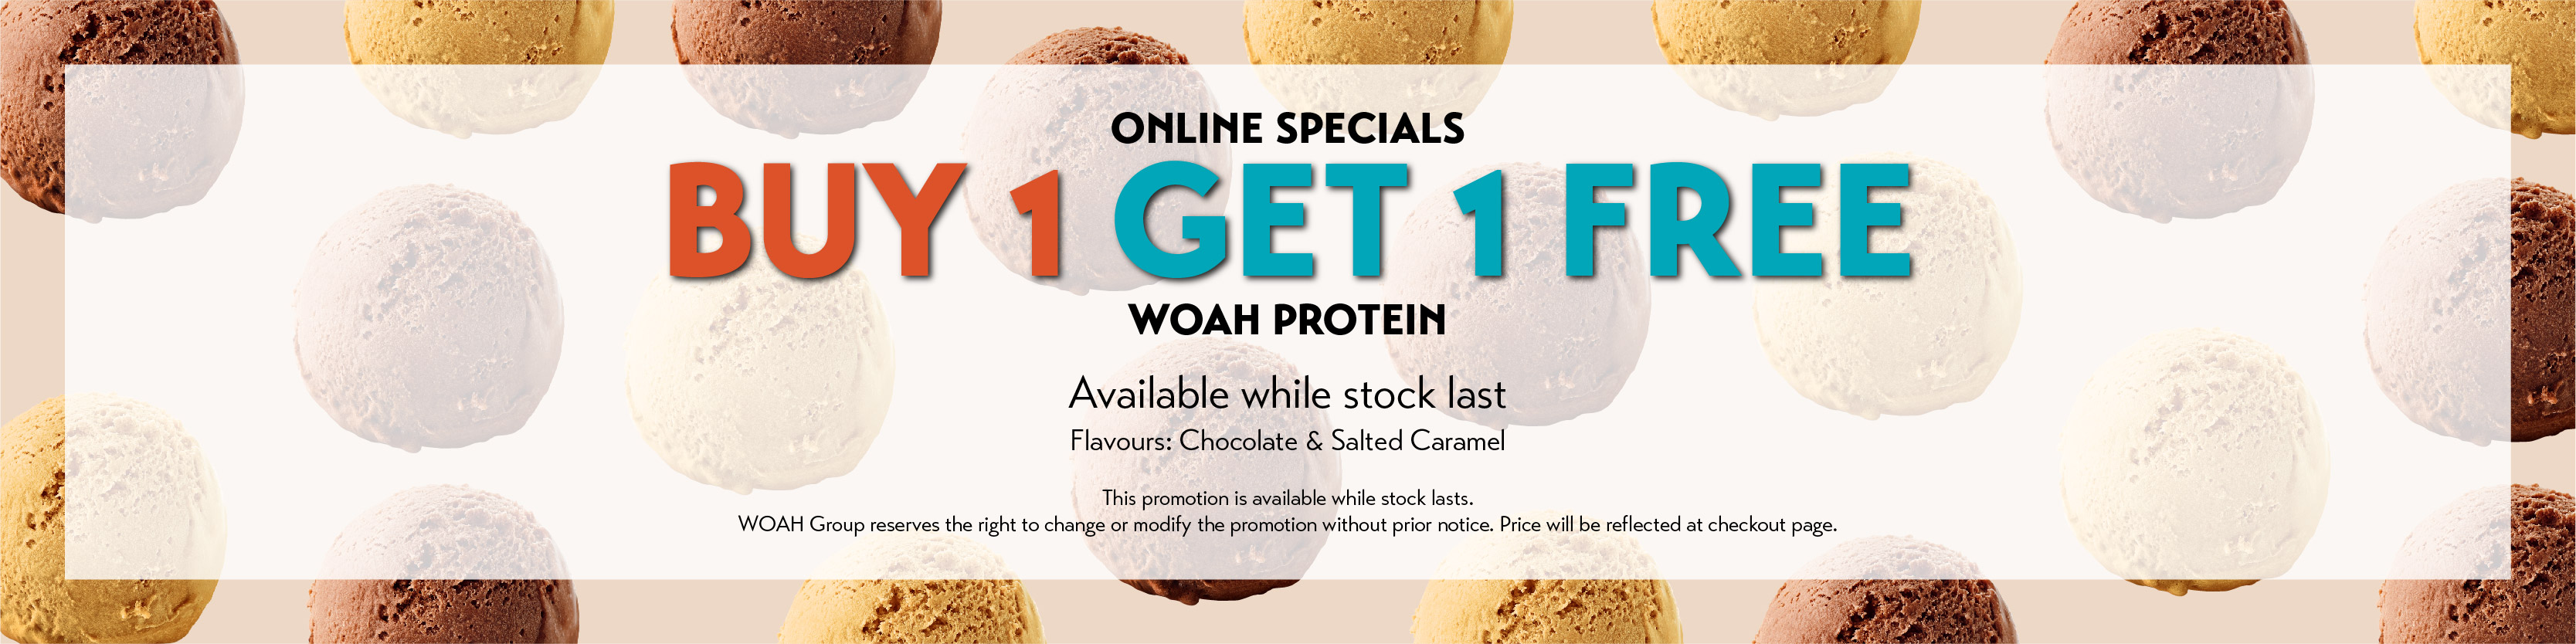 1 for 1 WOAH Protein